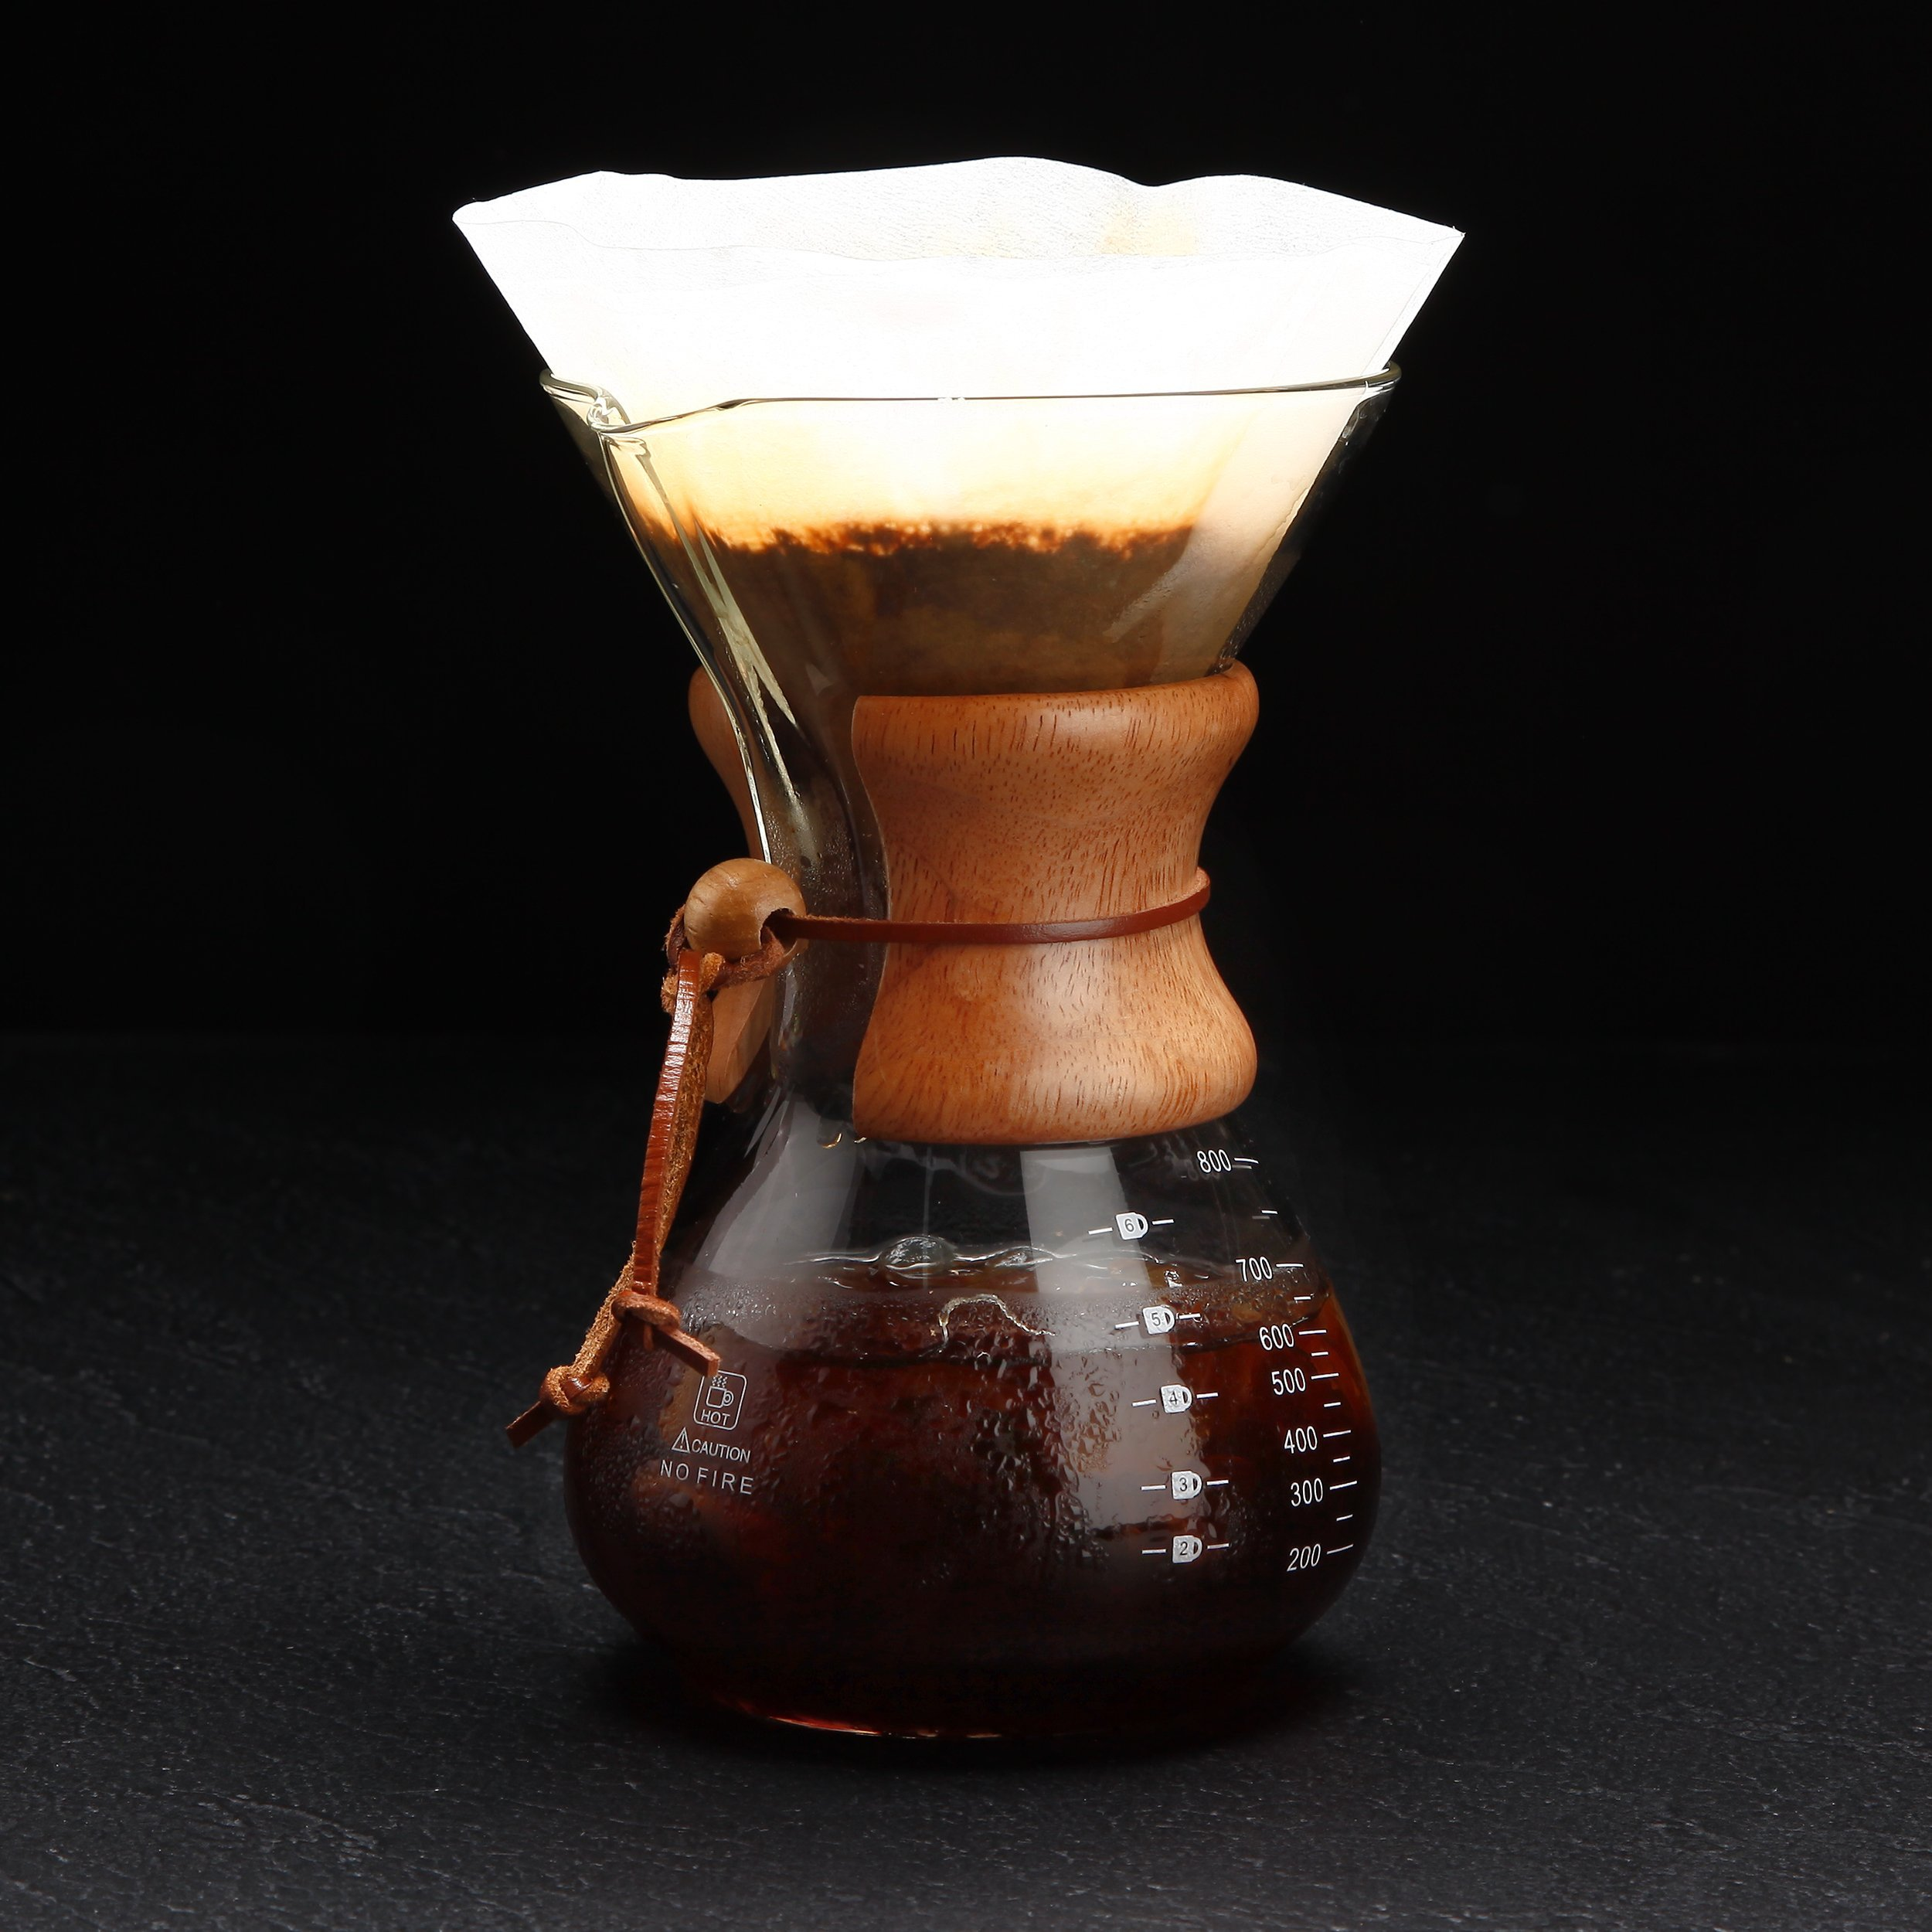 Pour Over Coffee Maker   Classic Hand Drip Brewer for Paper Filter   Hand Crafted Strong Borosilicate Glass with Lid, Easy Clean and Better Coffee by LePrem (Image #6)